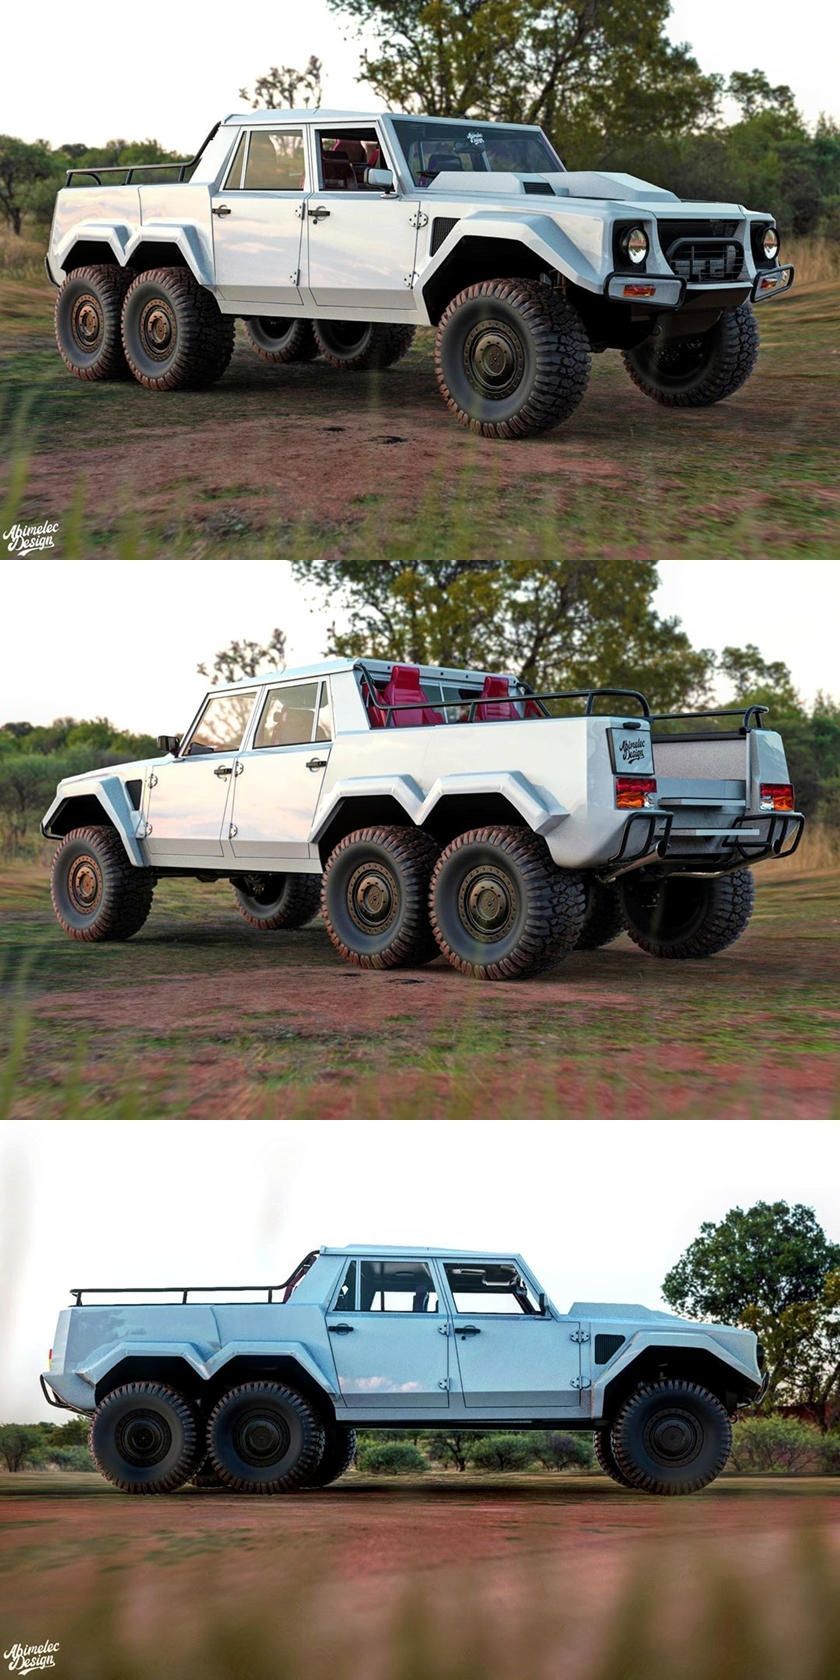 Lamborghini Lm002 6x6 Is The Ultimate Offroader There Must Be Someone Rich Enough To Make This A Reality 6x6 Truck Super Luxury Cars Dream Cars Jeep